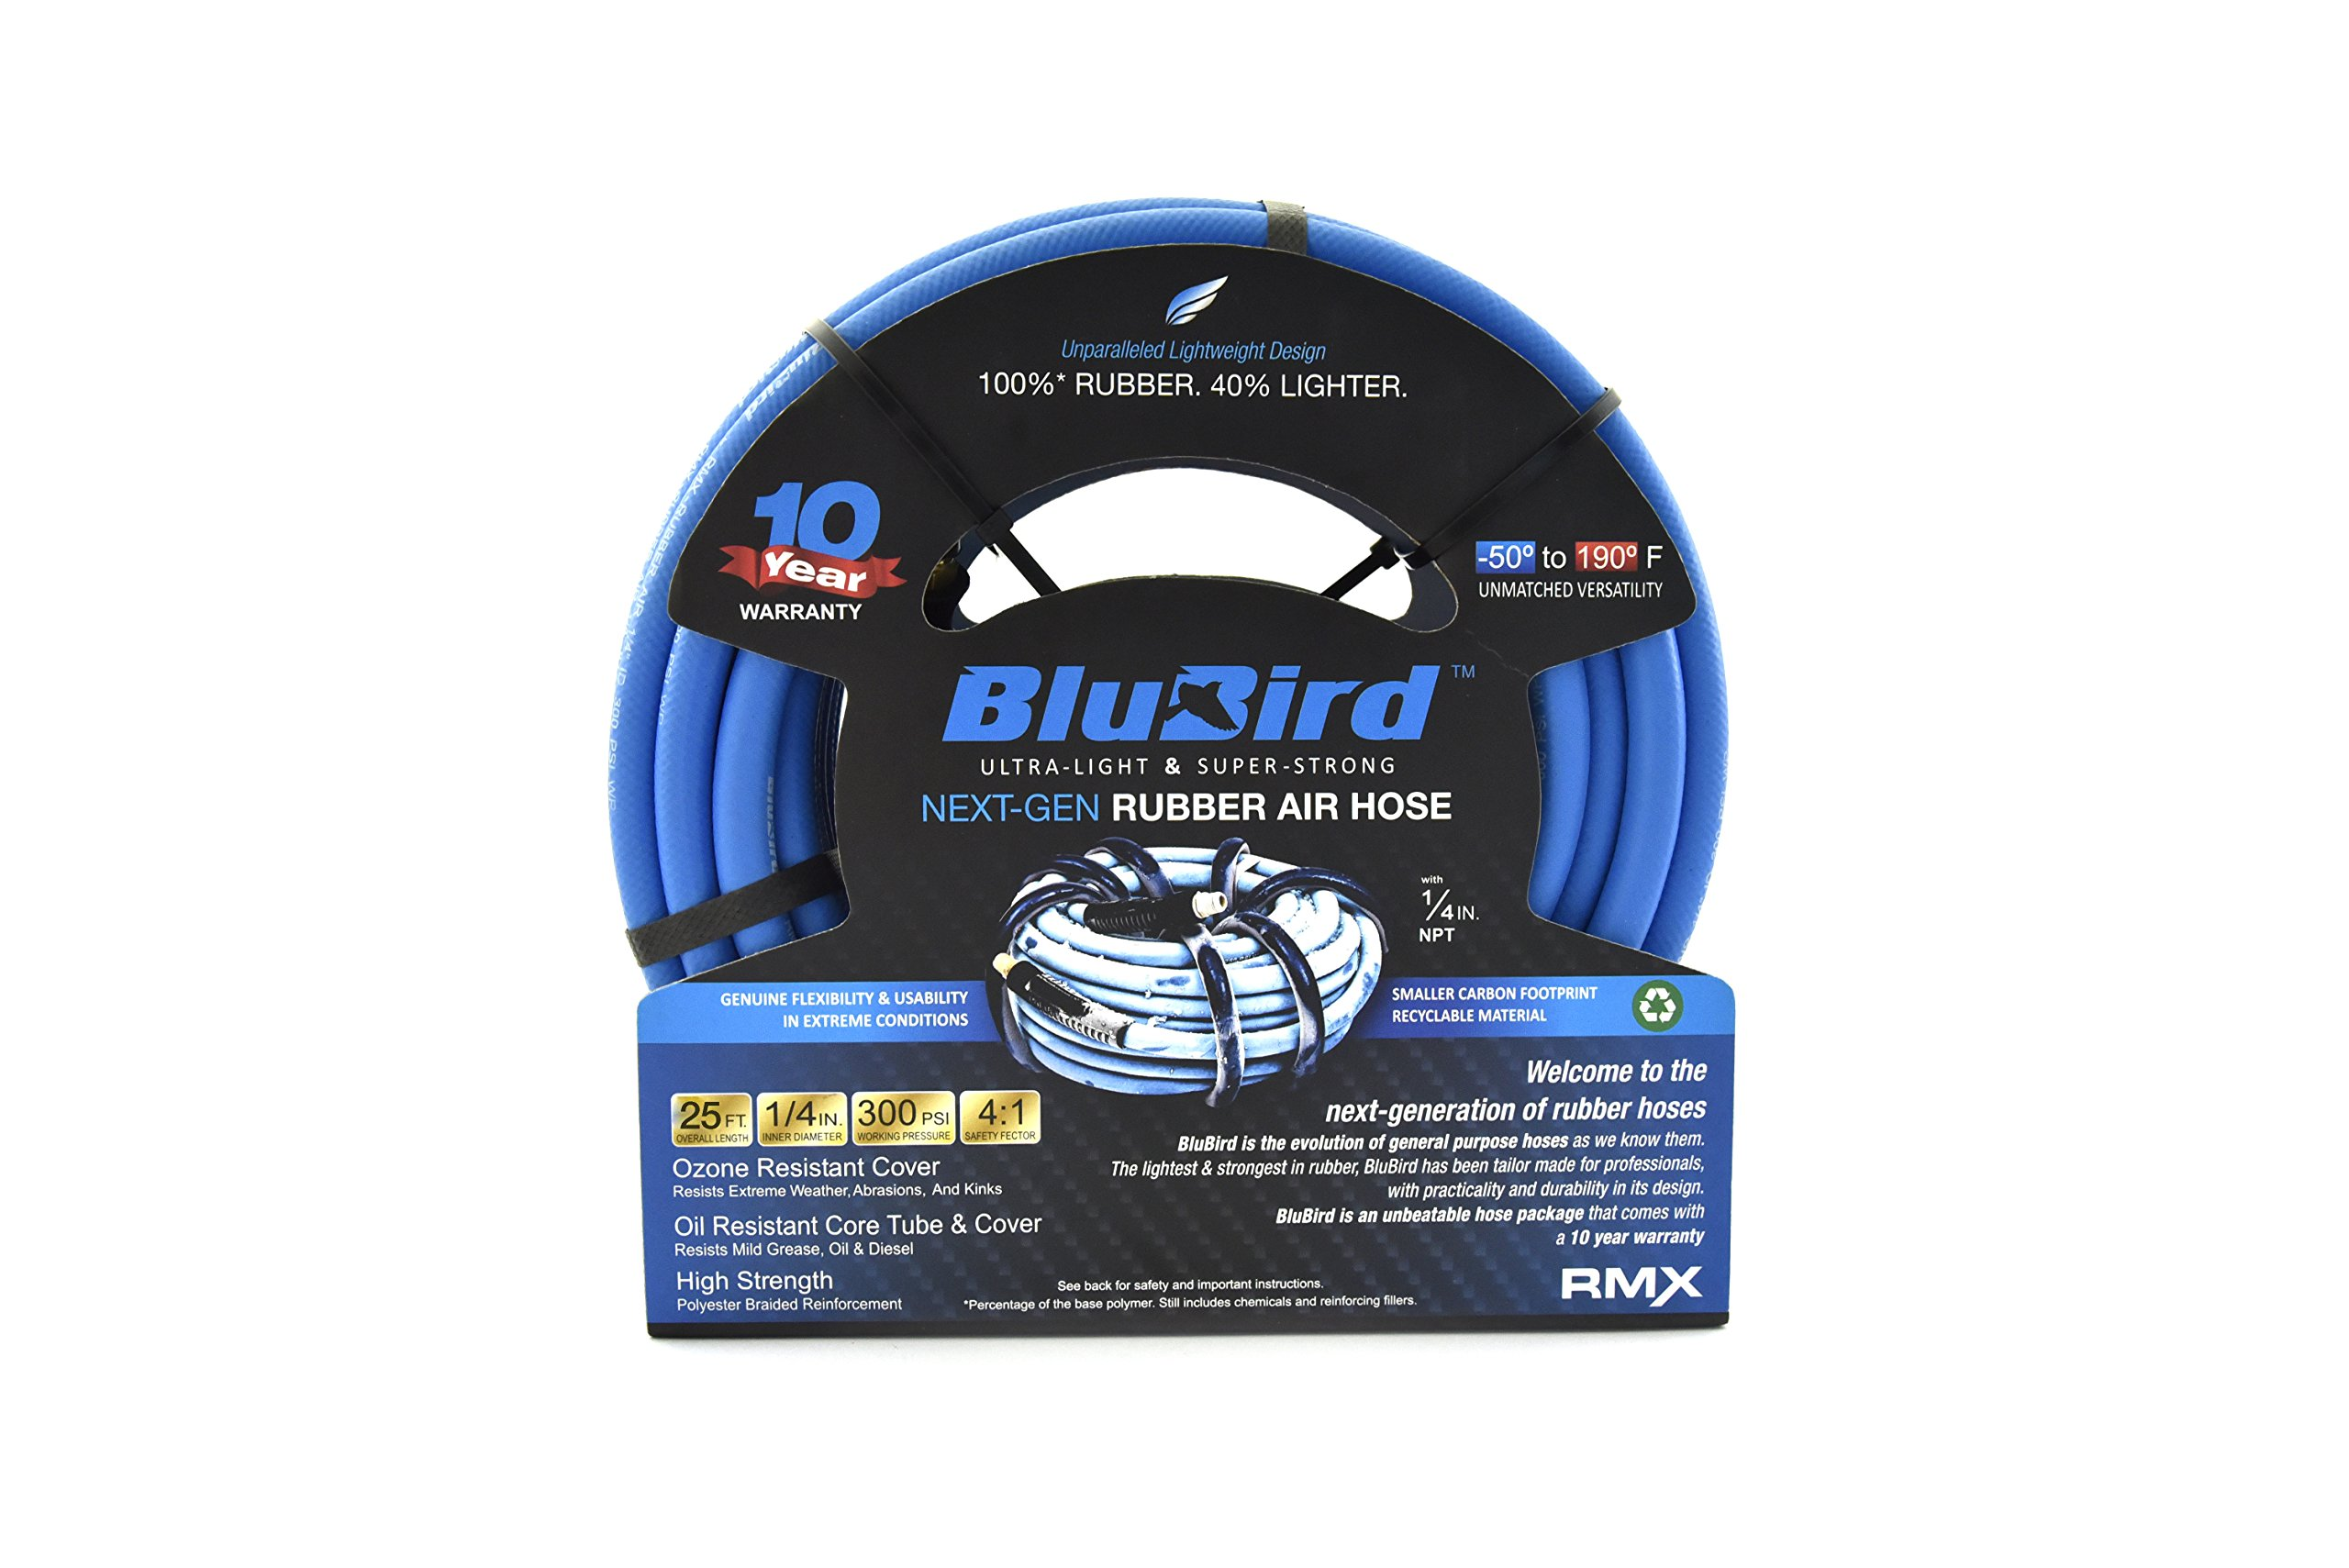 BLUBIRD: The Lightest and Strongest Rubber Air Hose 1/4'' x 25' 300PSI w/ 10 Year Warranty